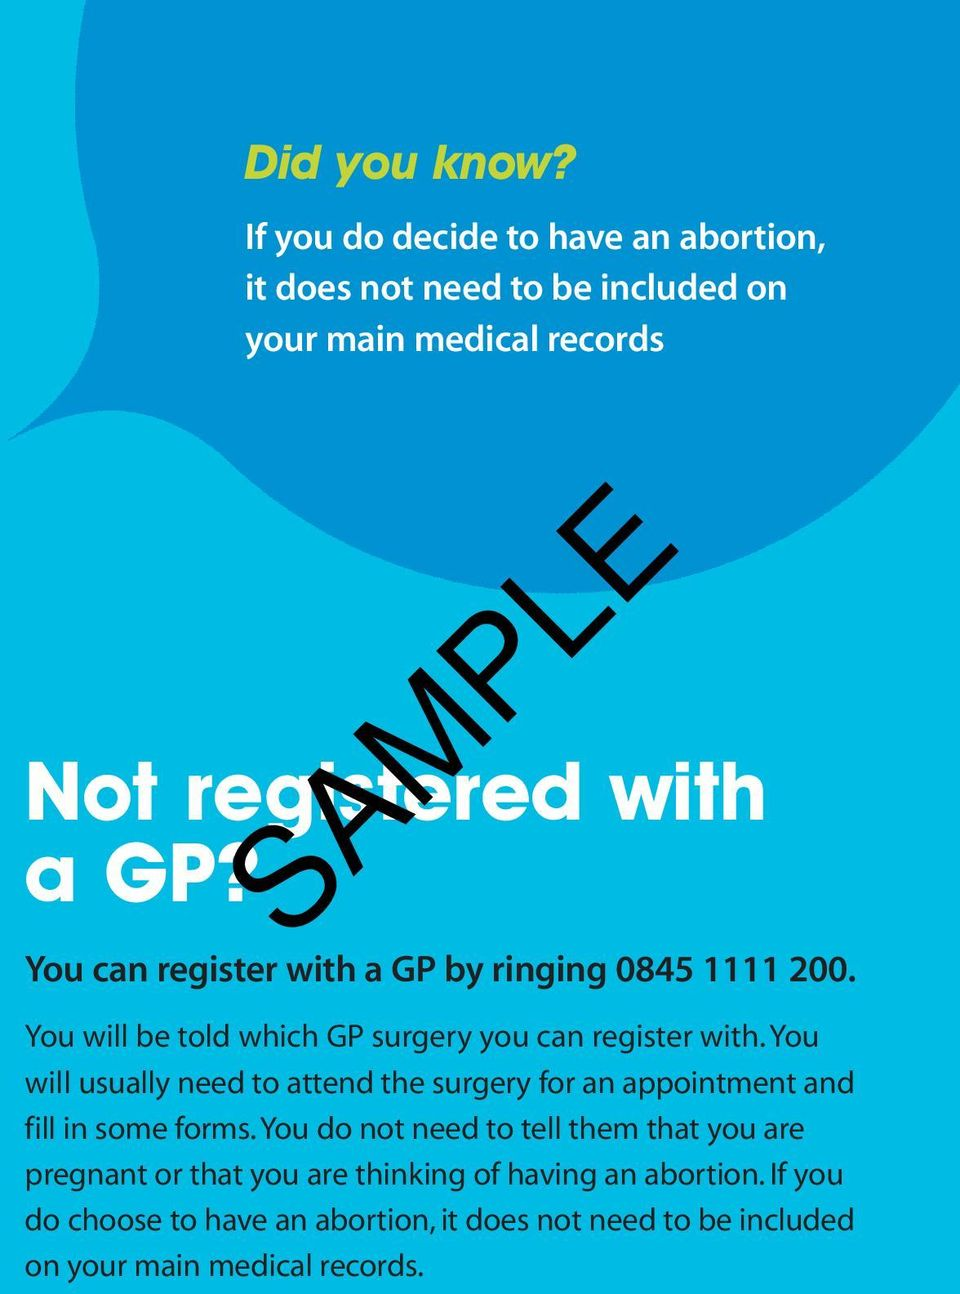 You can register with a GP by ringing 0845 1111 200. You will be told which GP surgery you can register with.